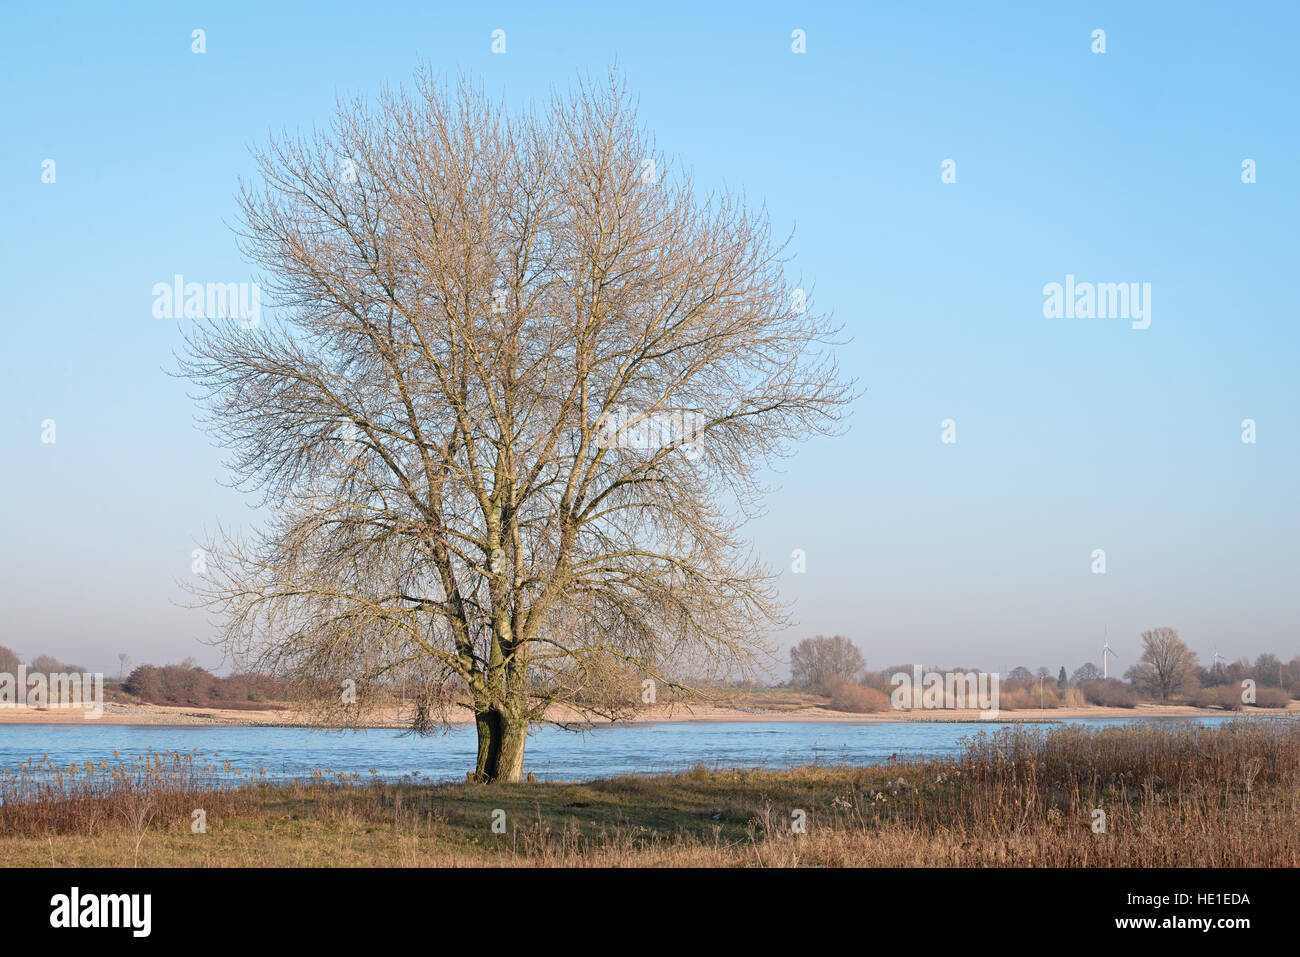 Single leafless tree on the banks of the Dutch river Waal in the evening sun - Stock Image